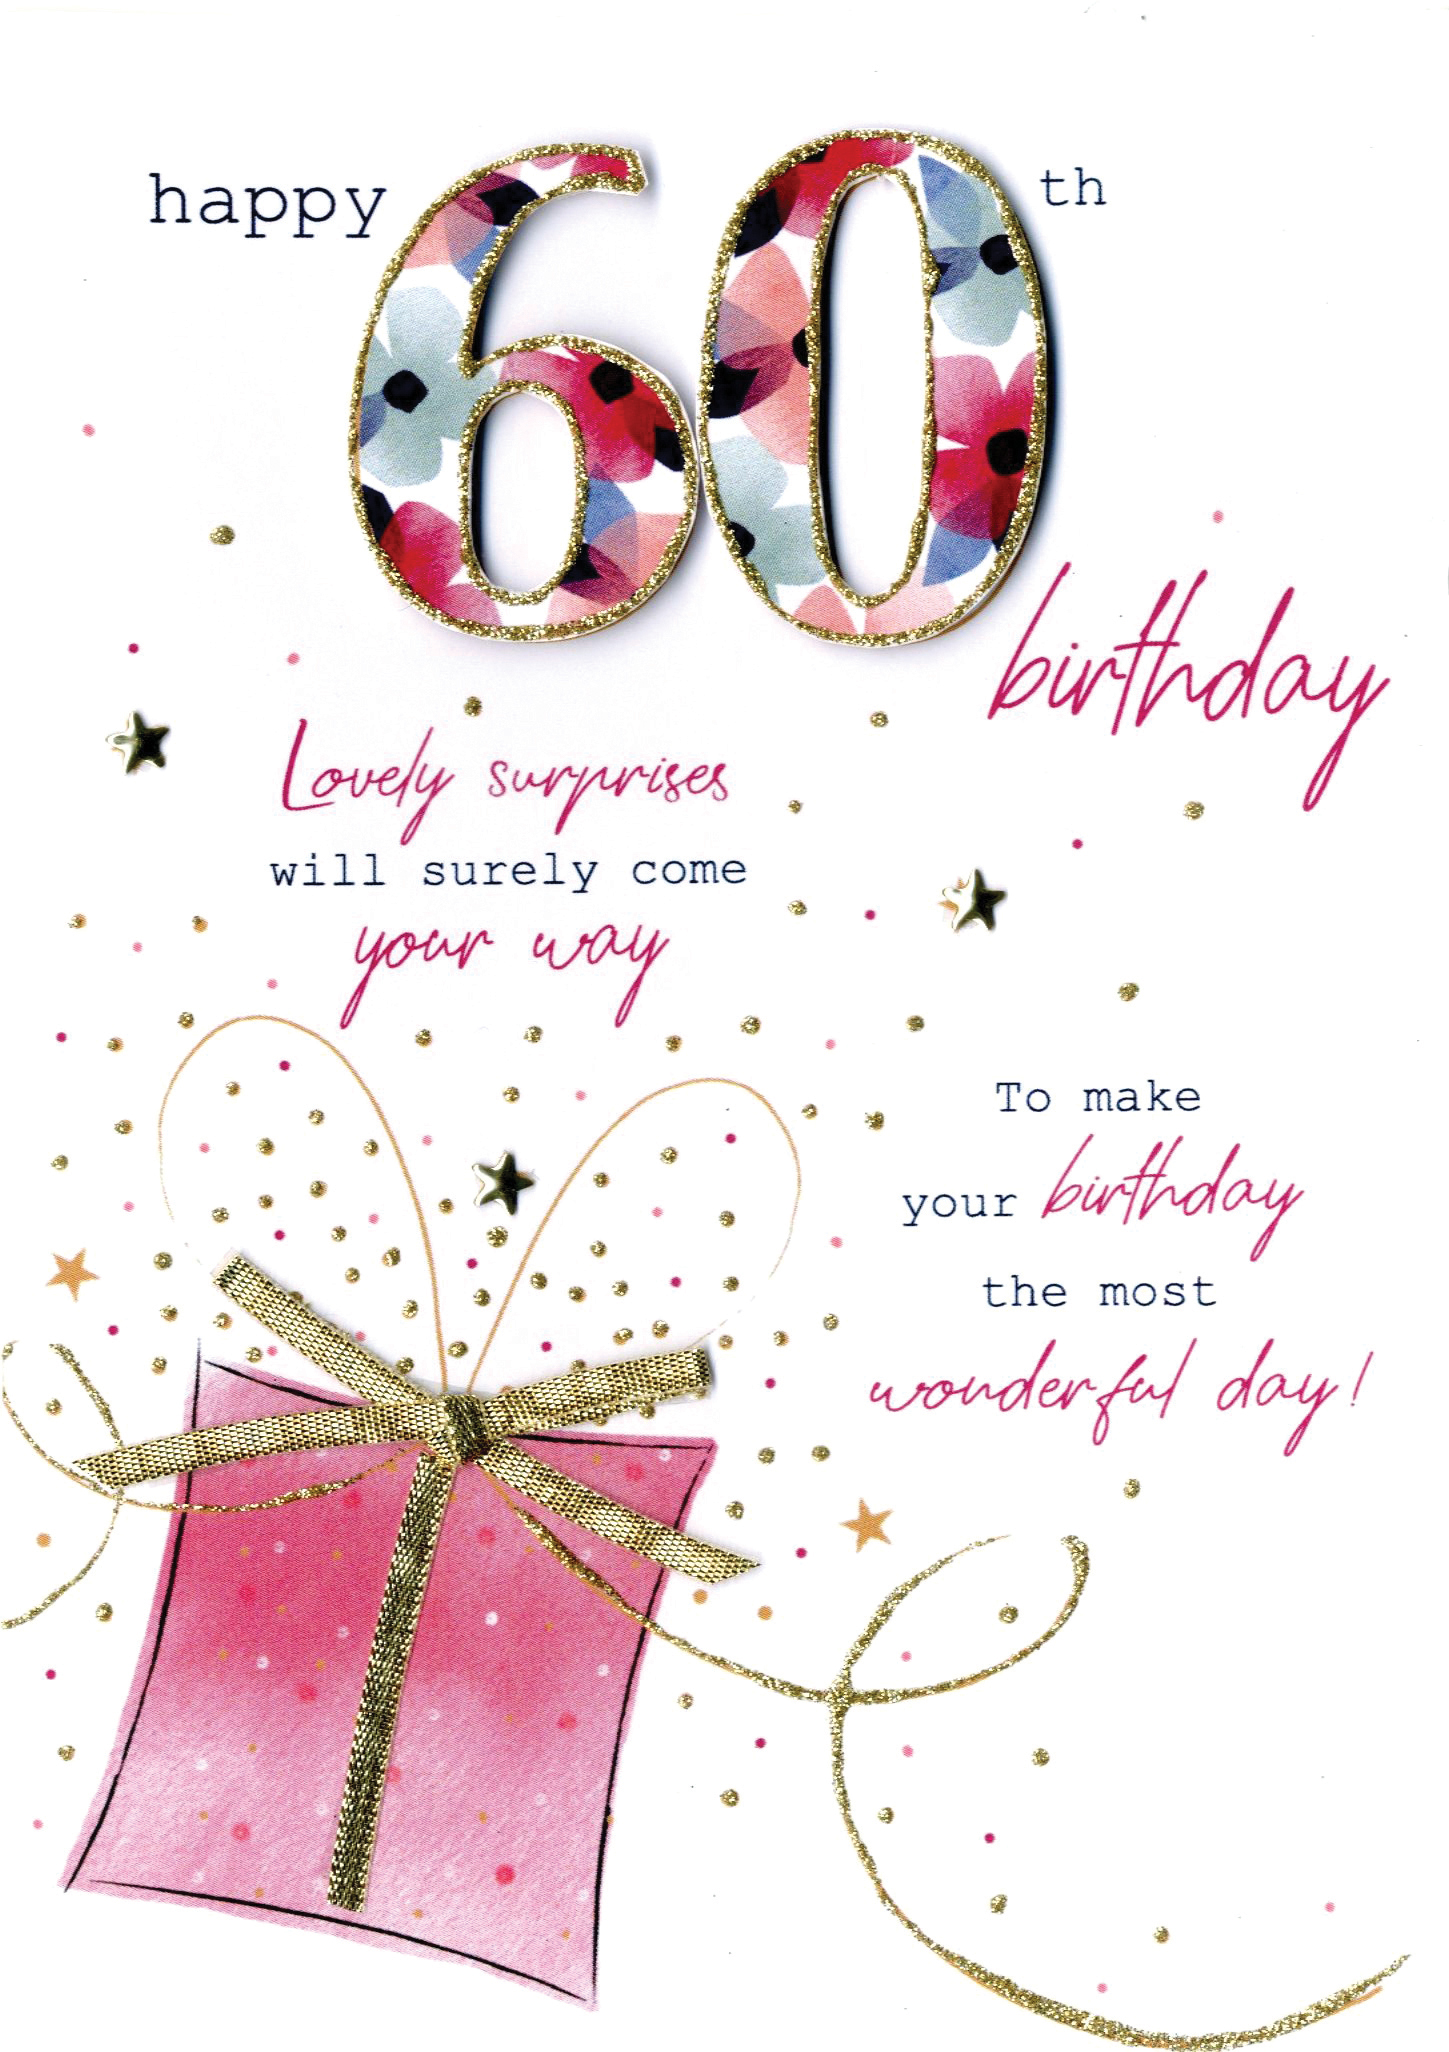 Happy Birthday Greeting Card /& Envelope Seal For Auntie Traditional Ladies Verse